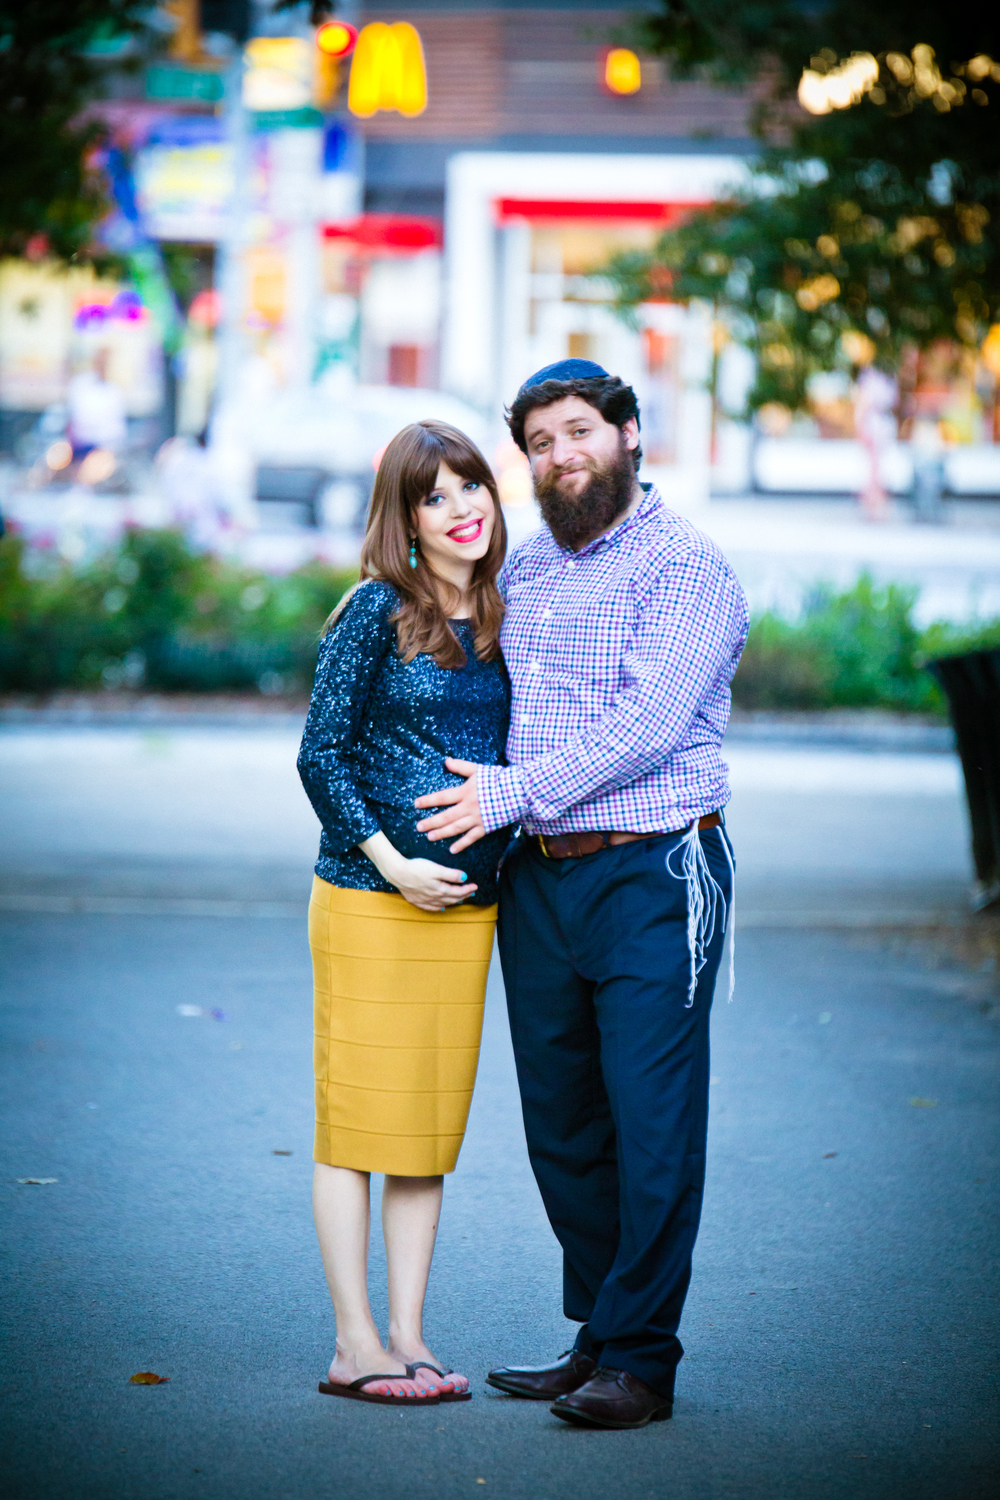 Photoshoot Yossef & Chaya | Maternity | Piha studio photography, new york, events, -8.jpg